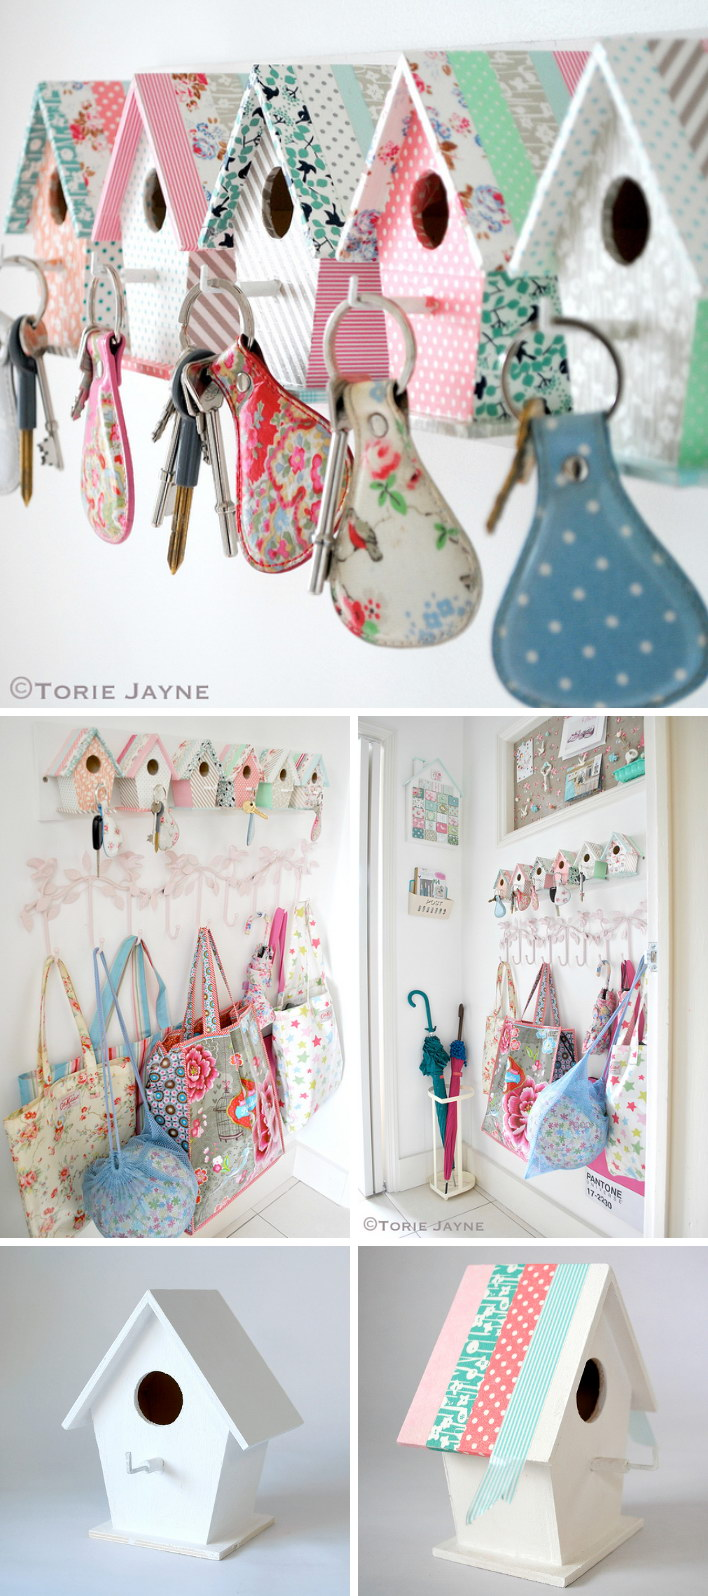 Diy room decor tutorials for teens - Diy Easy Bird House Key Hooks